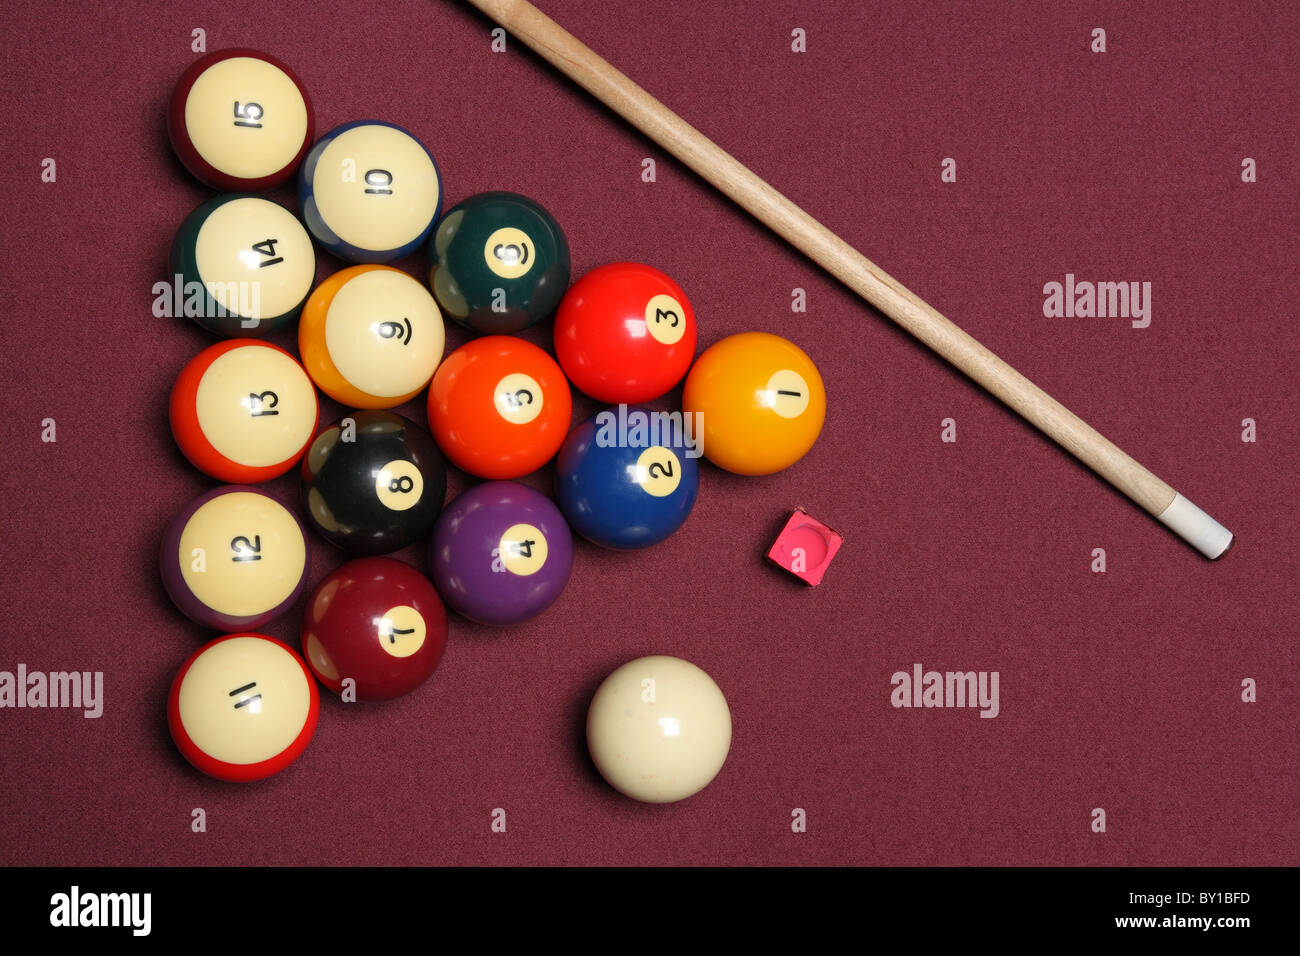 billiards pool table arrangement showing various game objects - Stock Image